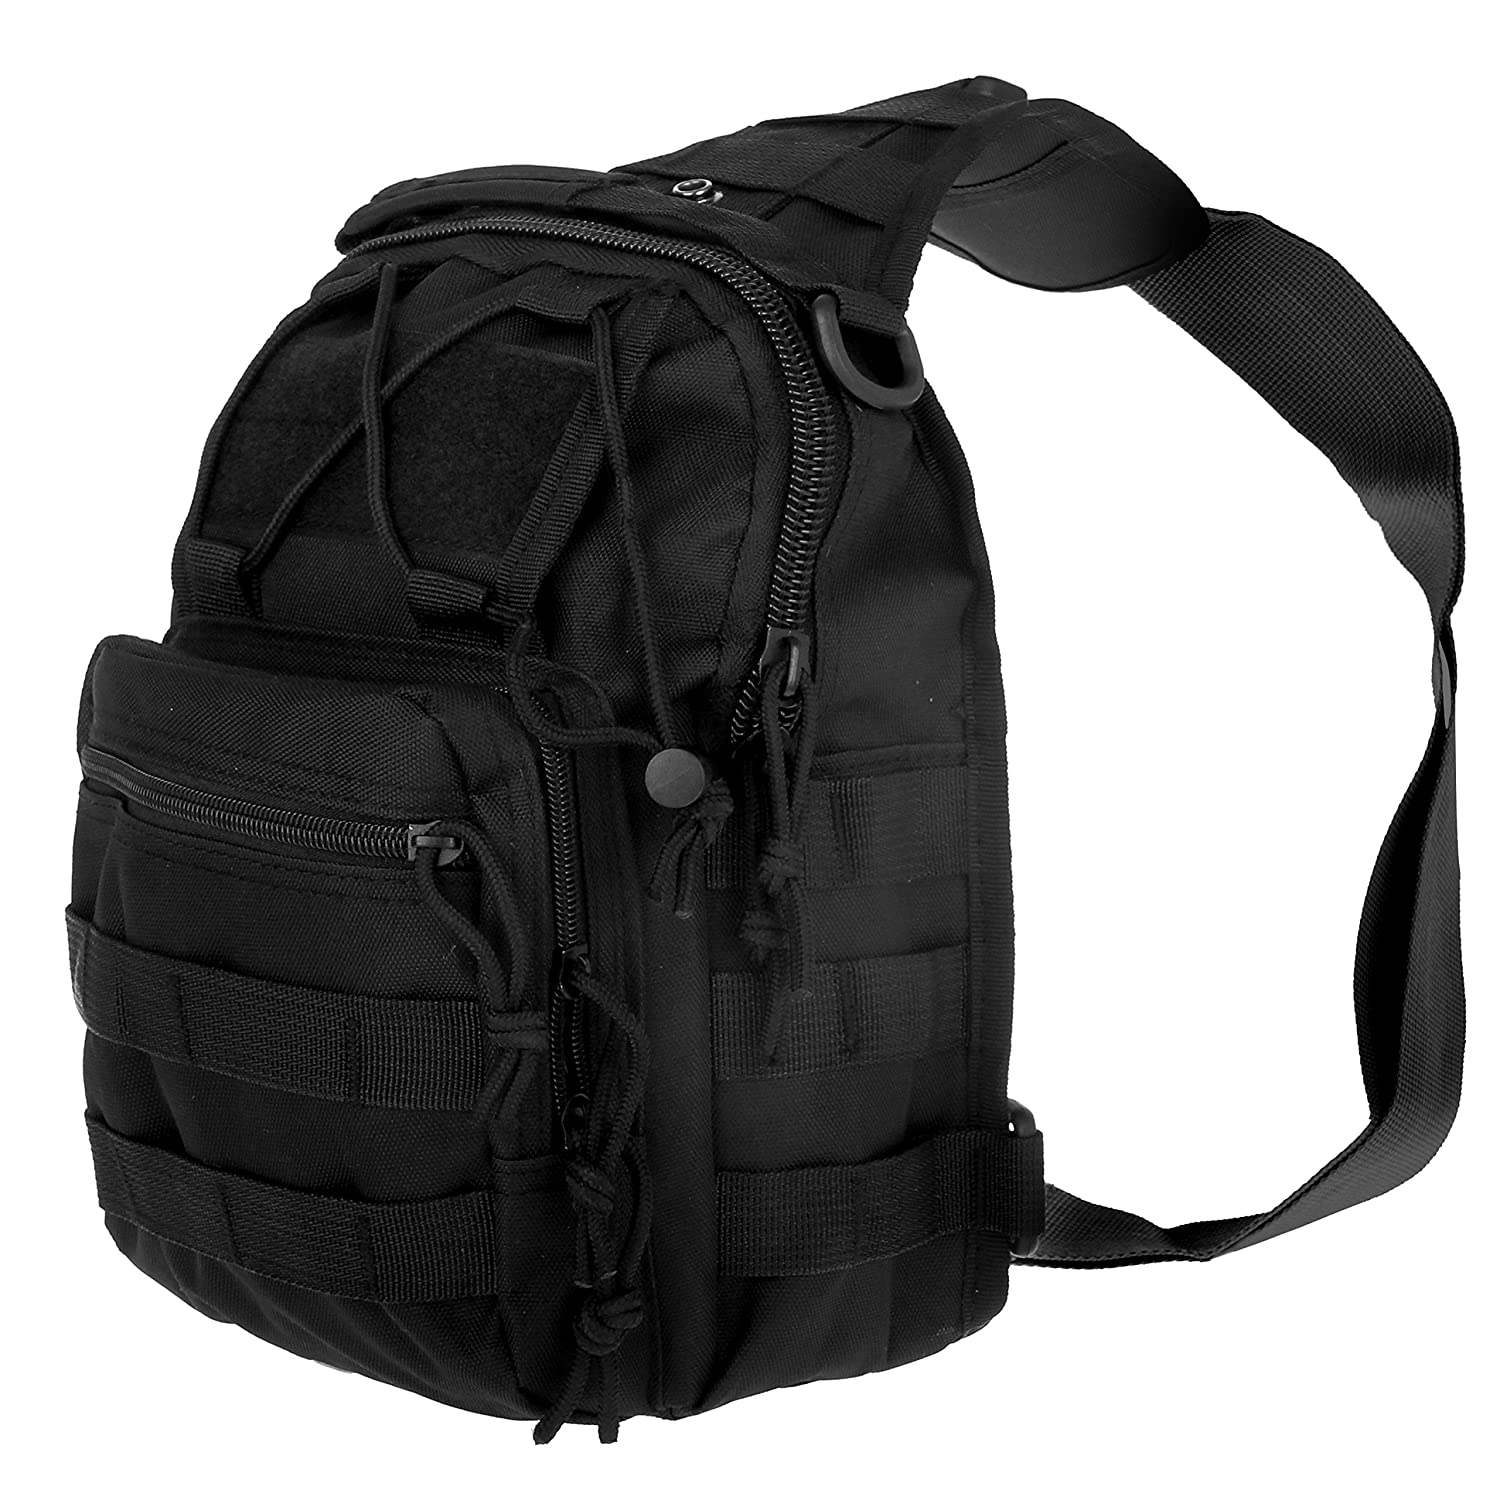 Sacoche Pour Camouflage Sac Sling À Sijueam Voyage Reg; Cyclisme Épaule Poitrine Extérieure Dos Backpack Camping Multifonctionnel Bag 6gYv7bfy